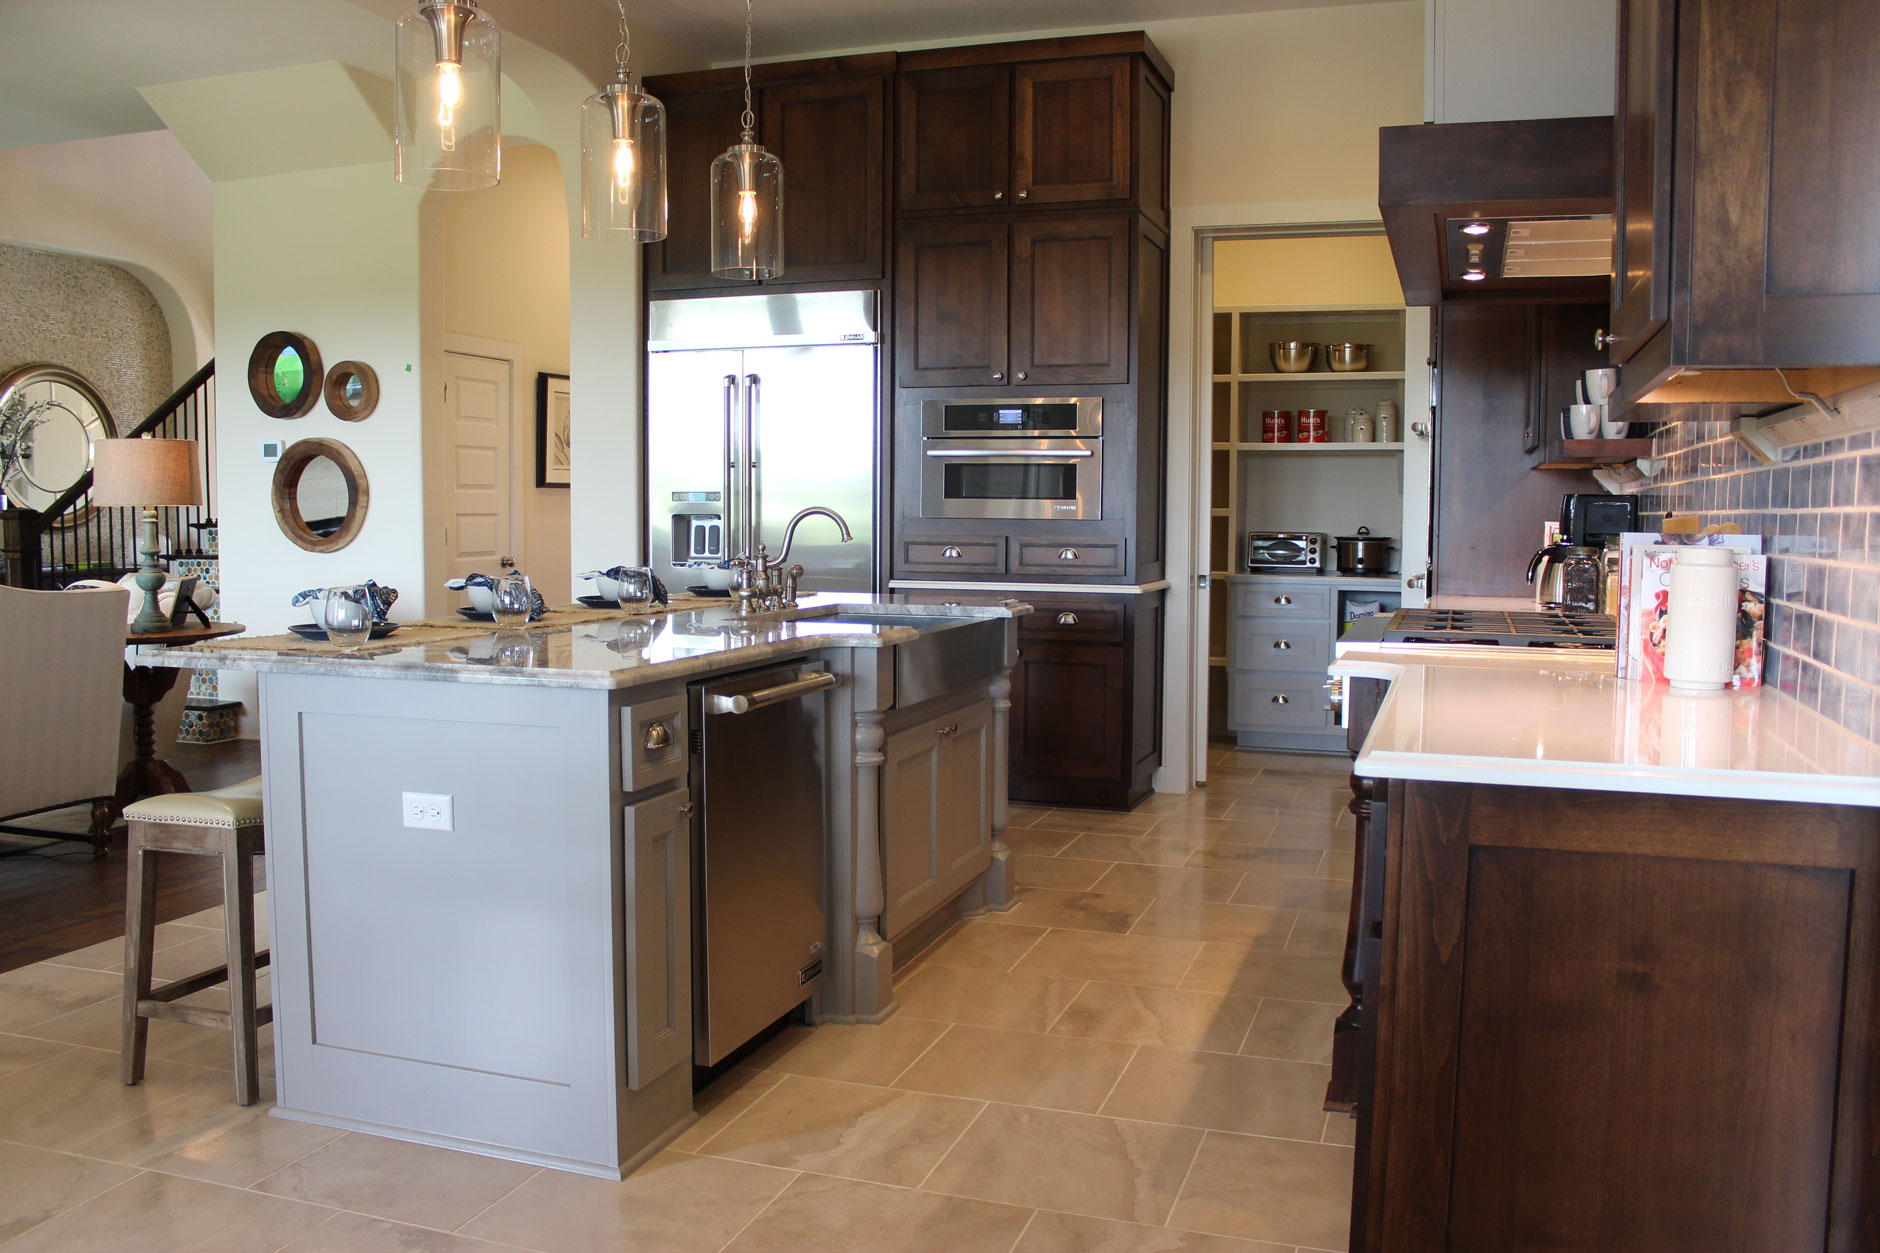 Wood Kitchen Cabinets With Painted Island Kitchen Photos Burrows Cabinets Central Texas Builder